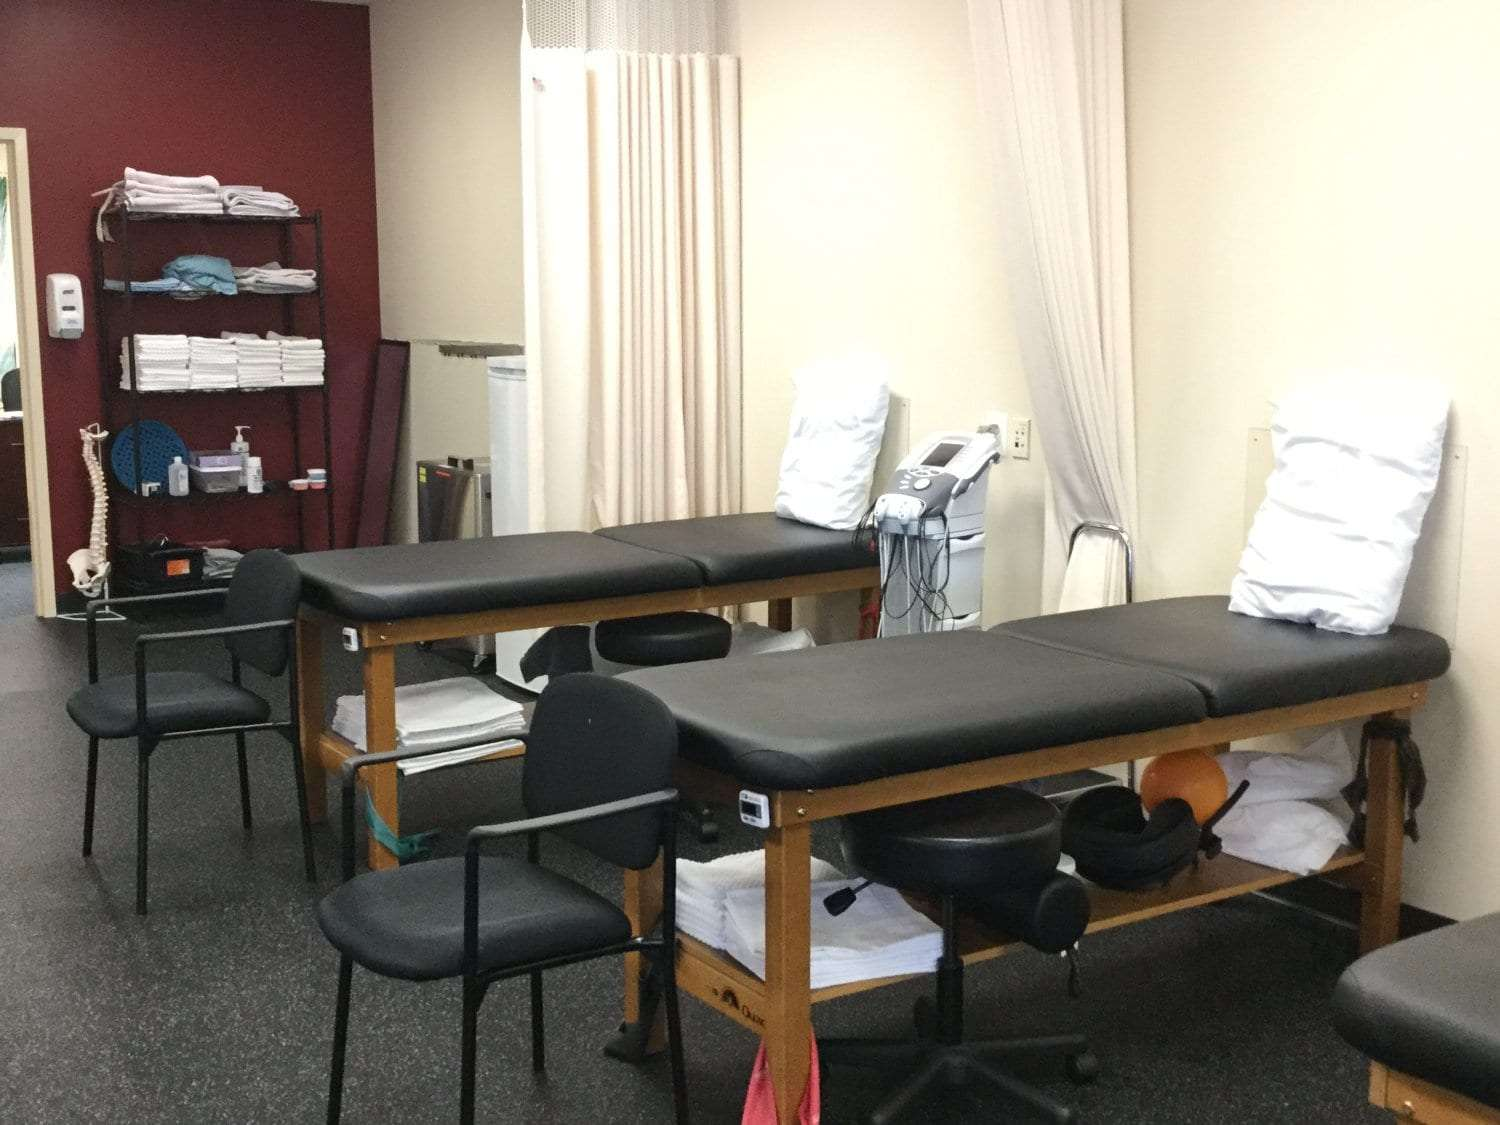 Here is an image of clean, well maintained beds at our physical therapy clinic in Sicklerville, New Jersey.